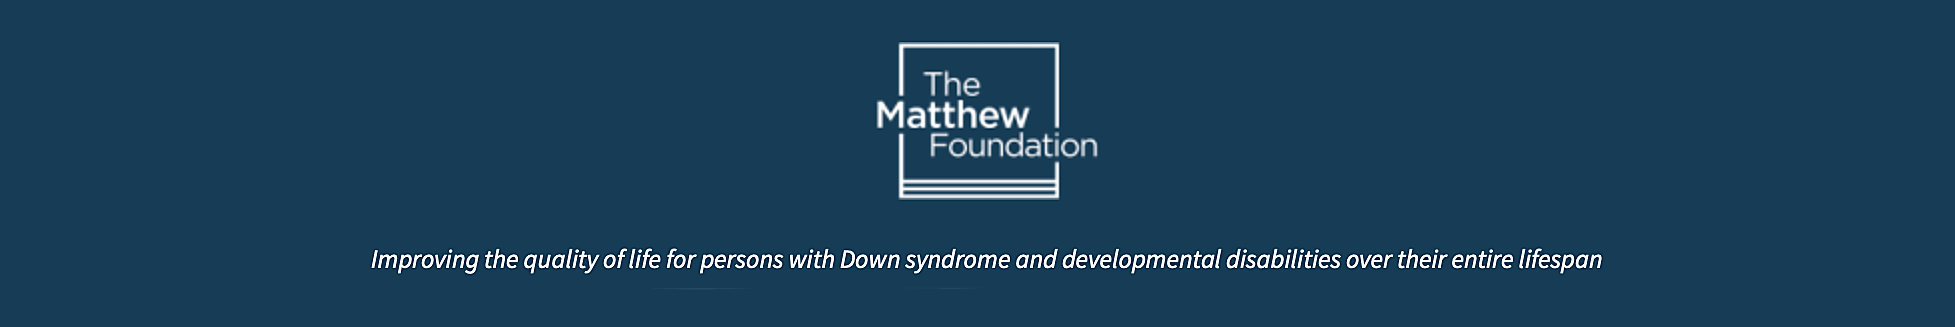 The Matthew Foundation – Improving the quality of life for persons with Down syndrome and developmental disabilities over their entire lifespan